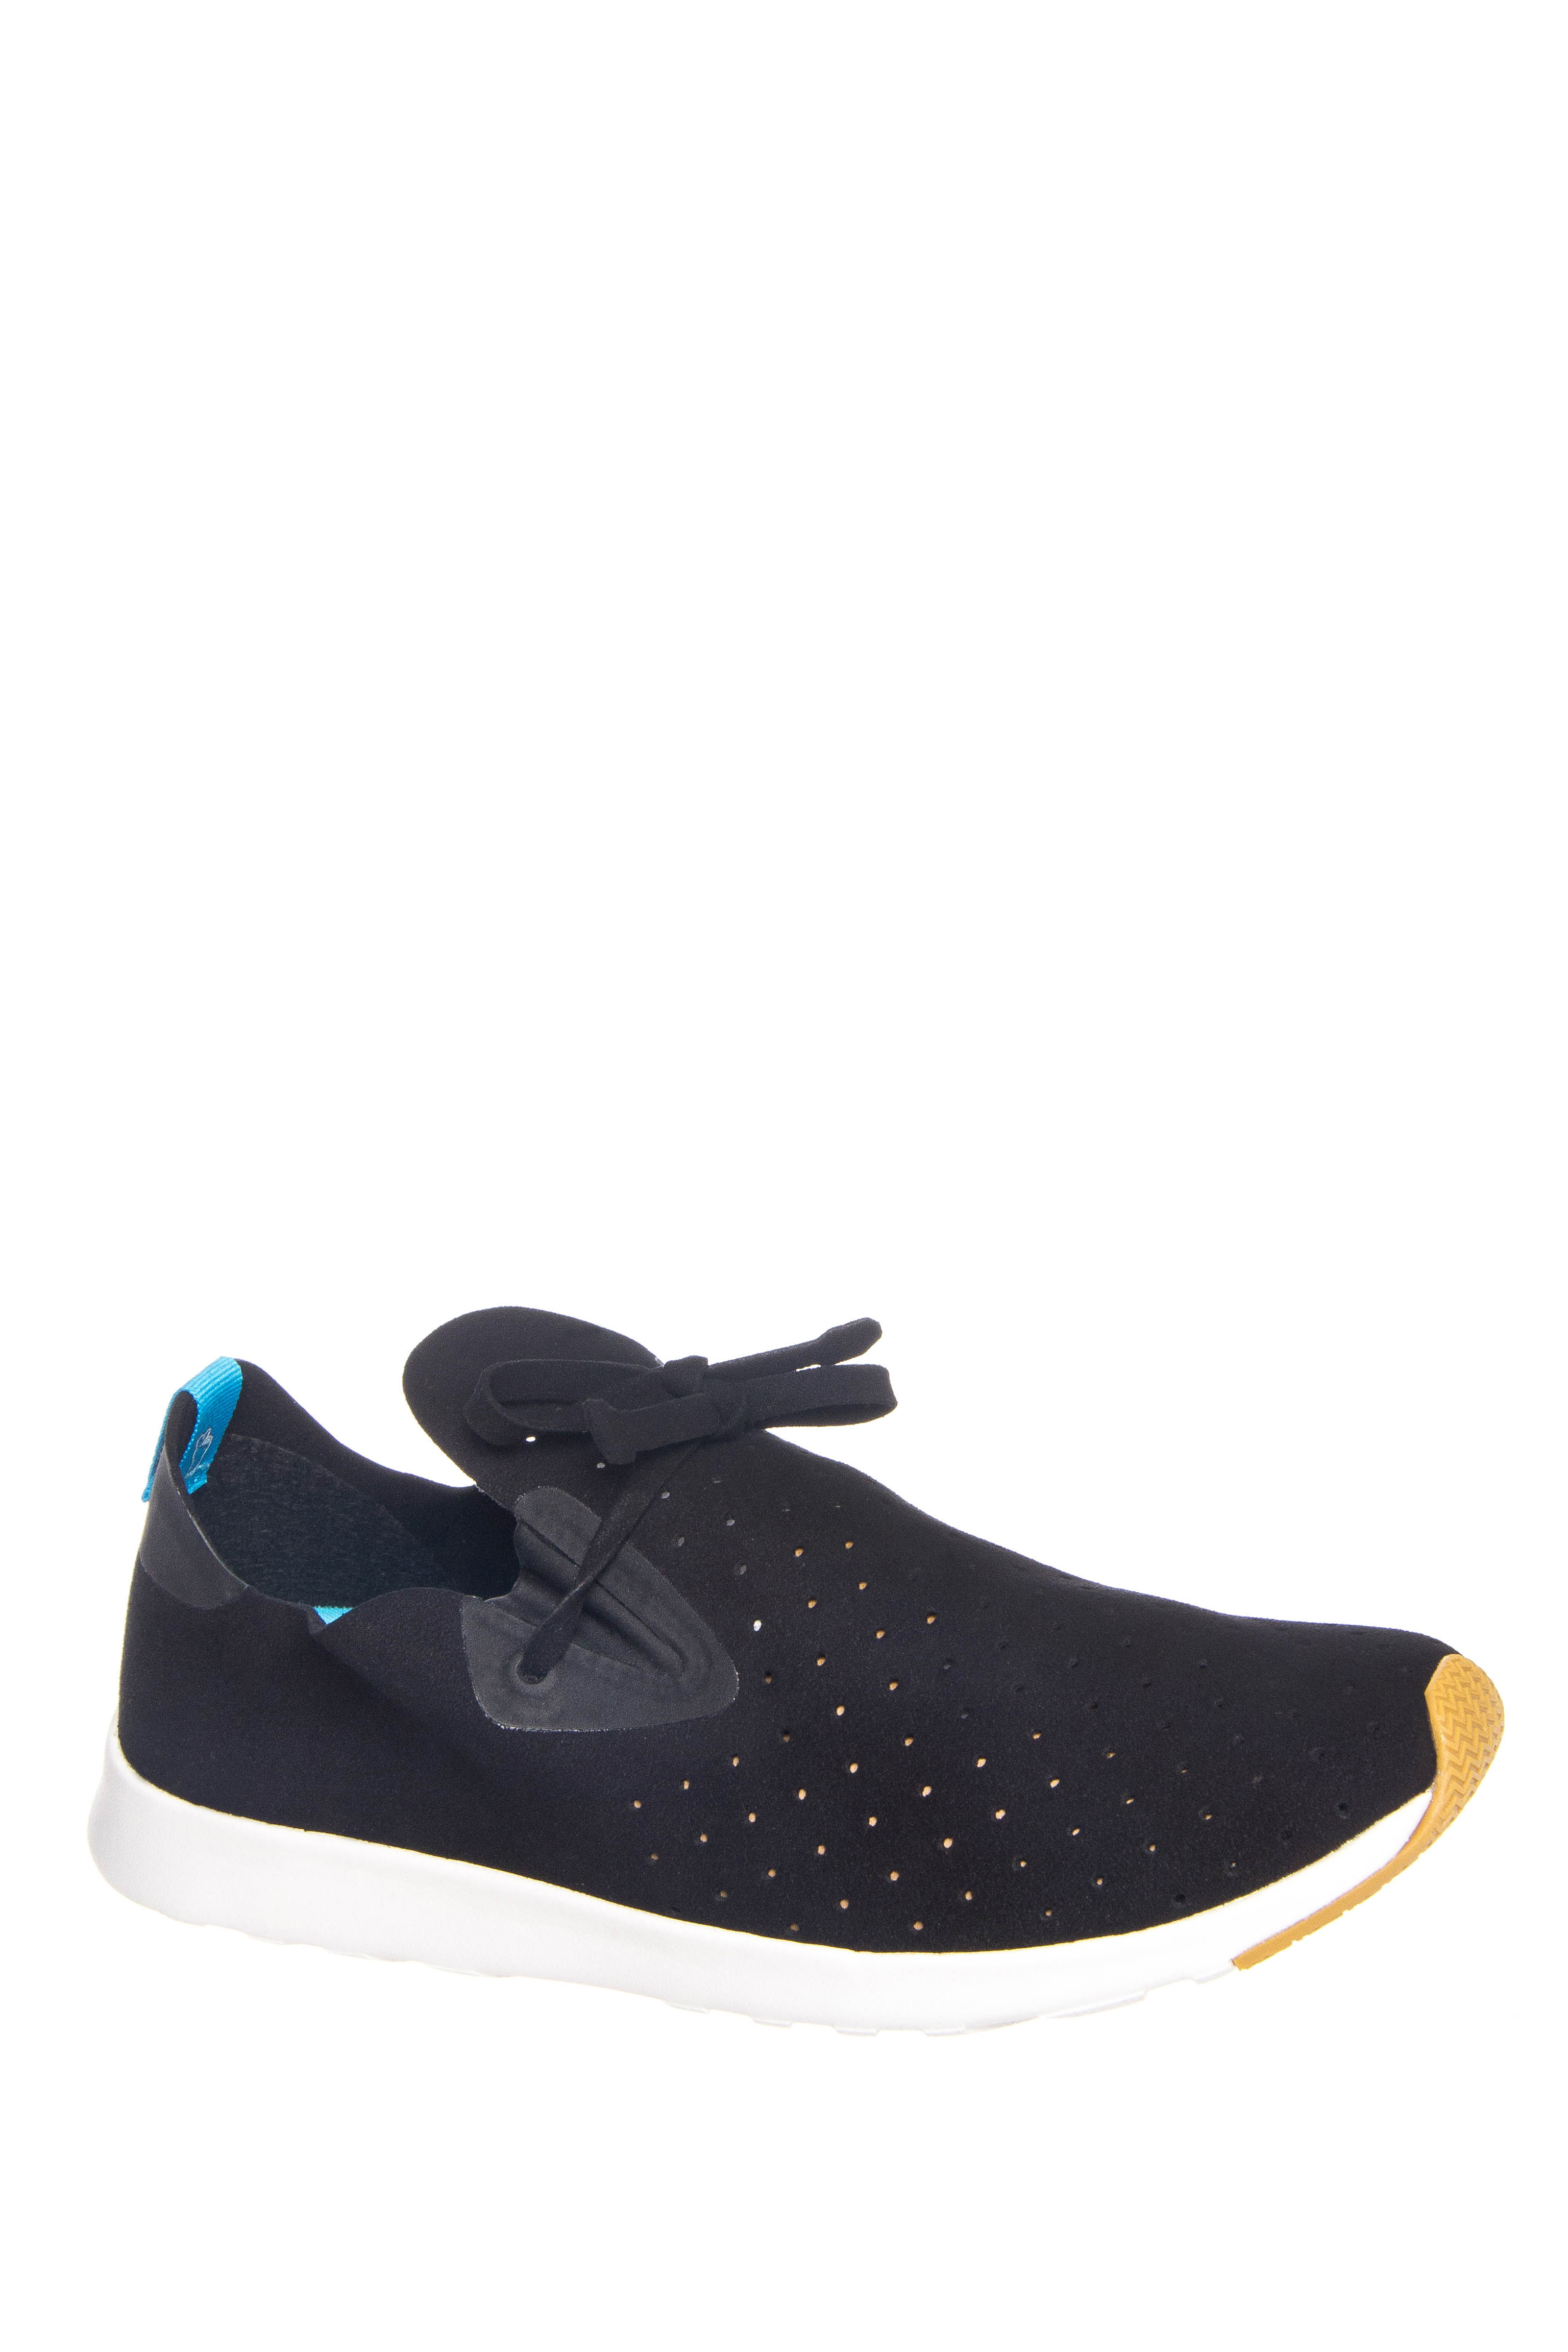 Native Unisex Apollo Moc Low Top Sneakers - Jiffy Black / Shell White